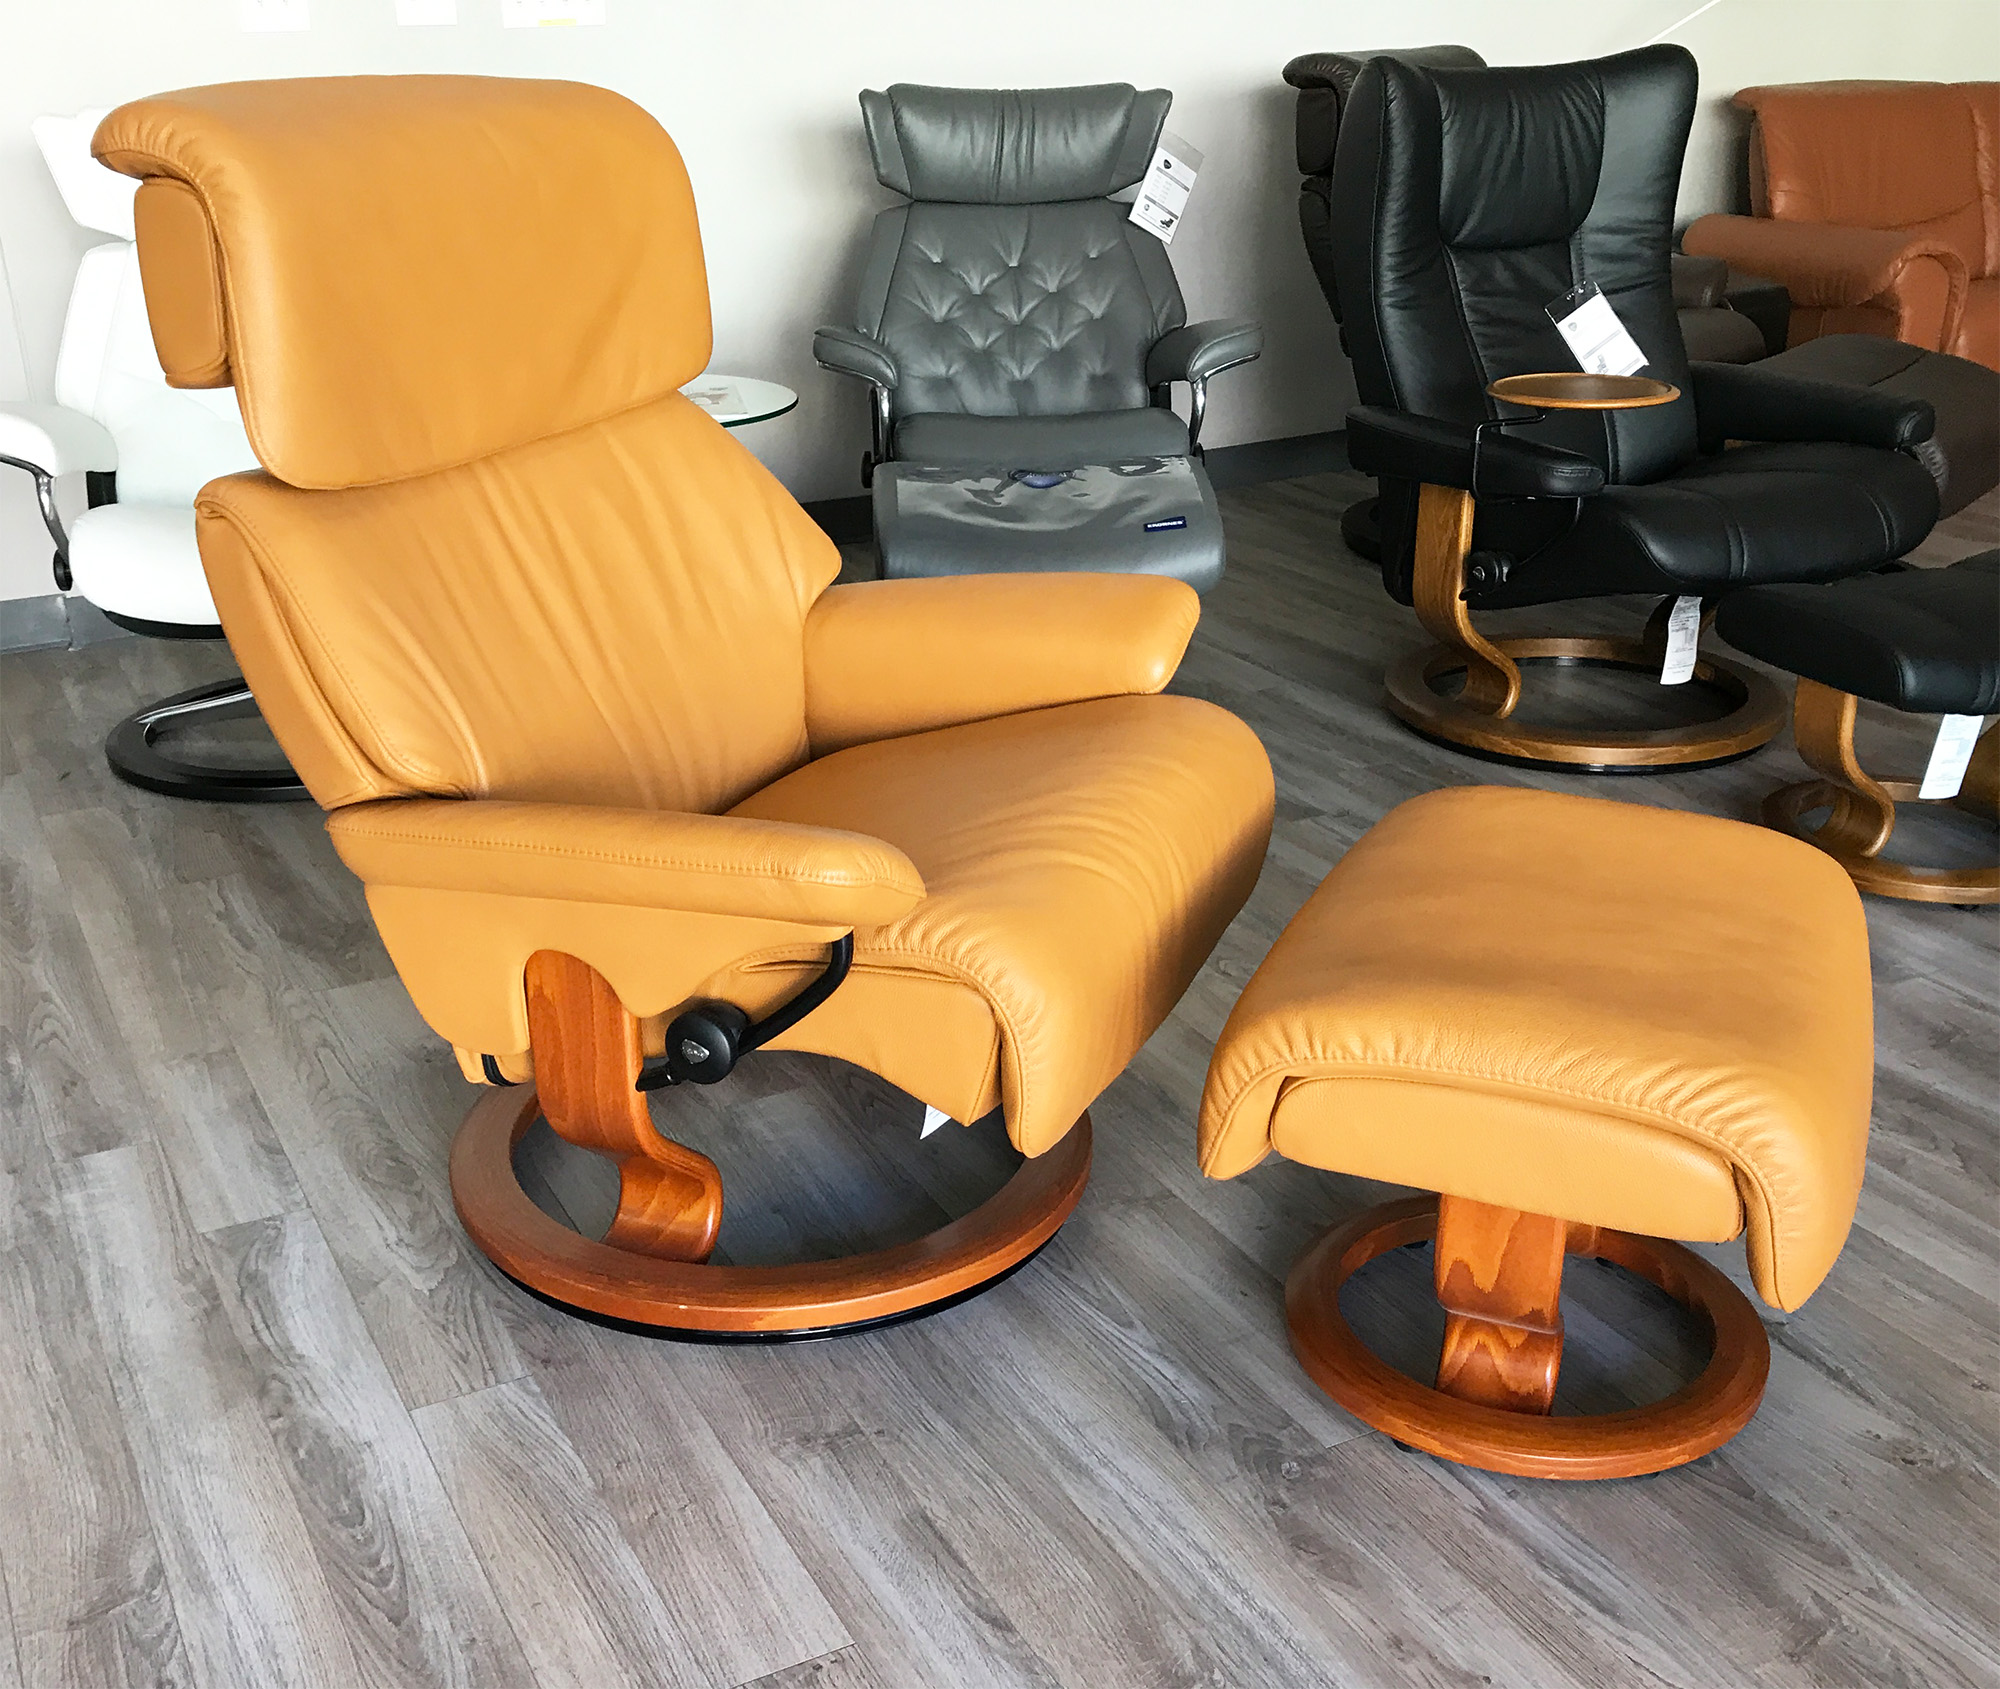 stressless spirit large dream cori tan leather recliner chair and ottoman by ekornes. Black Bedroom Furniture Sets. Home Design Ideas